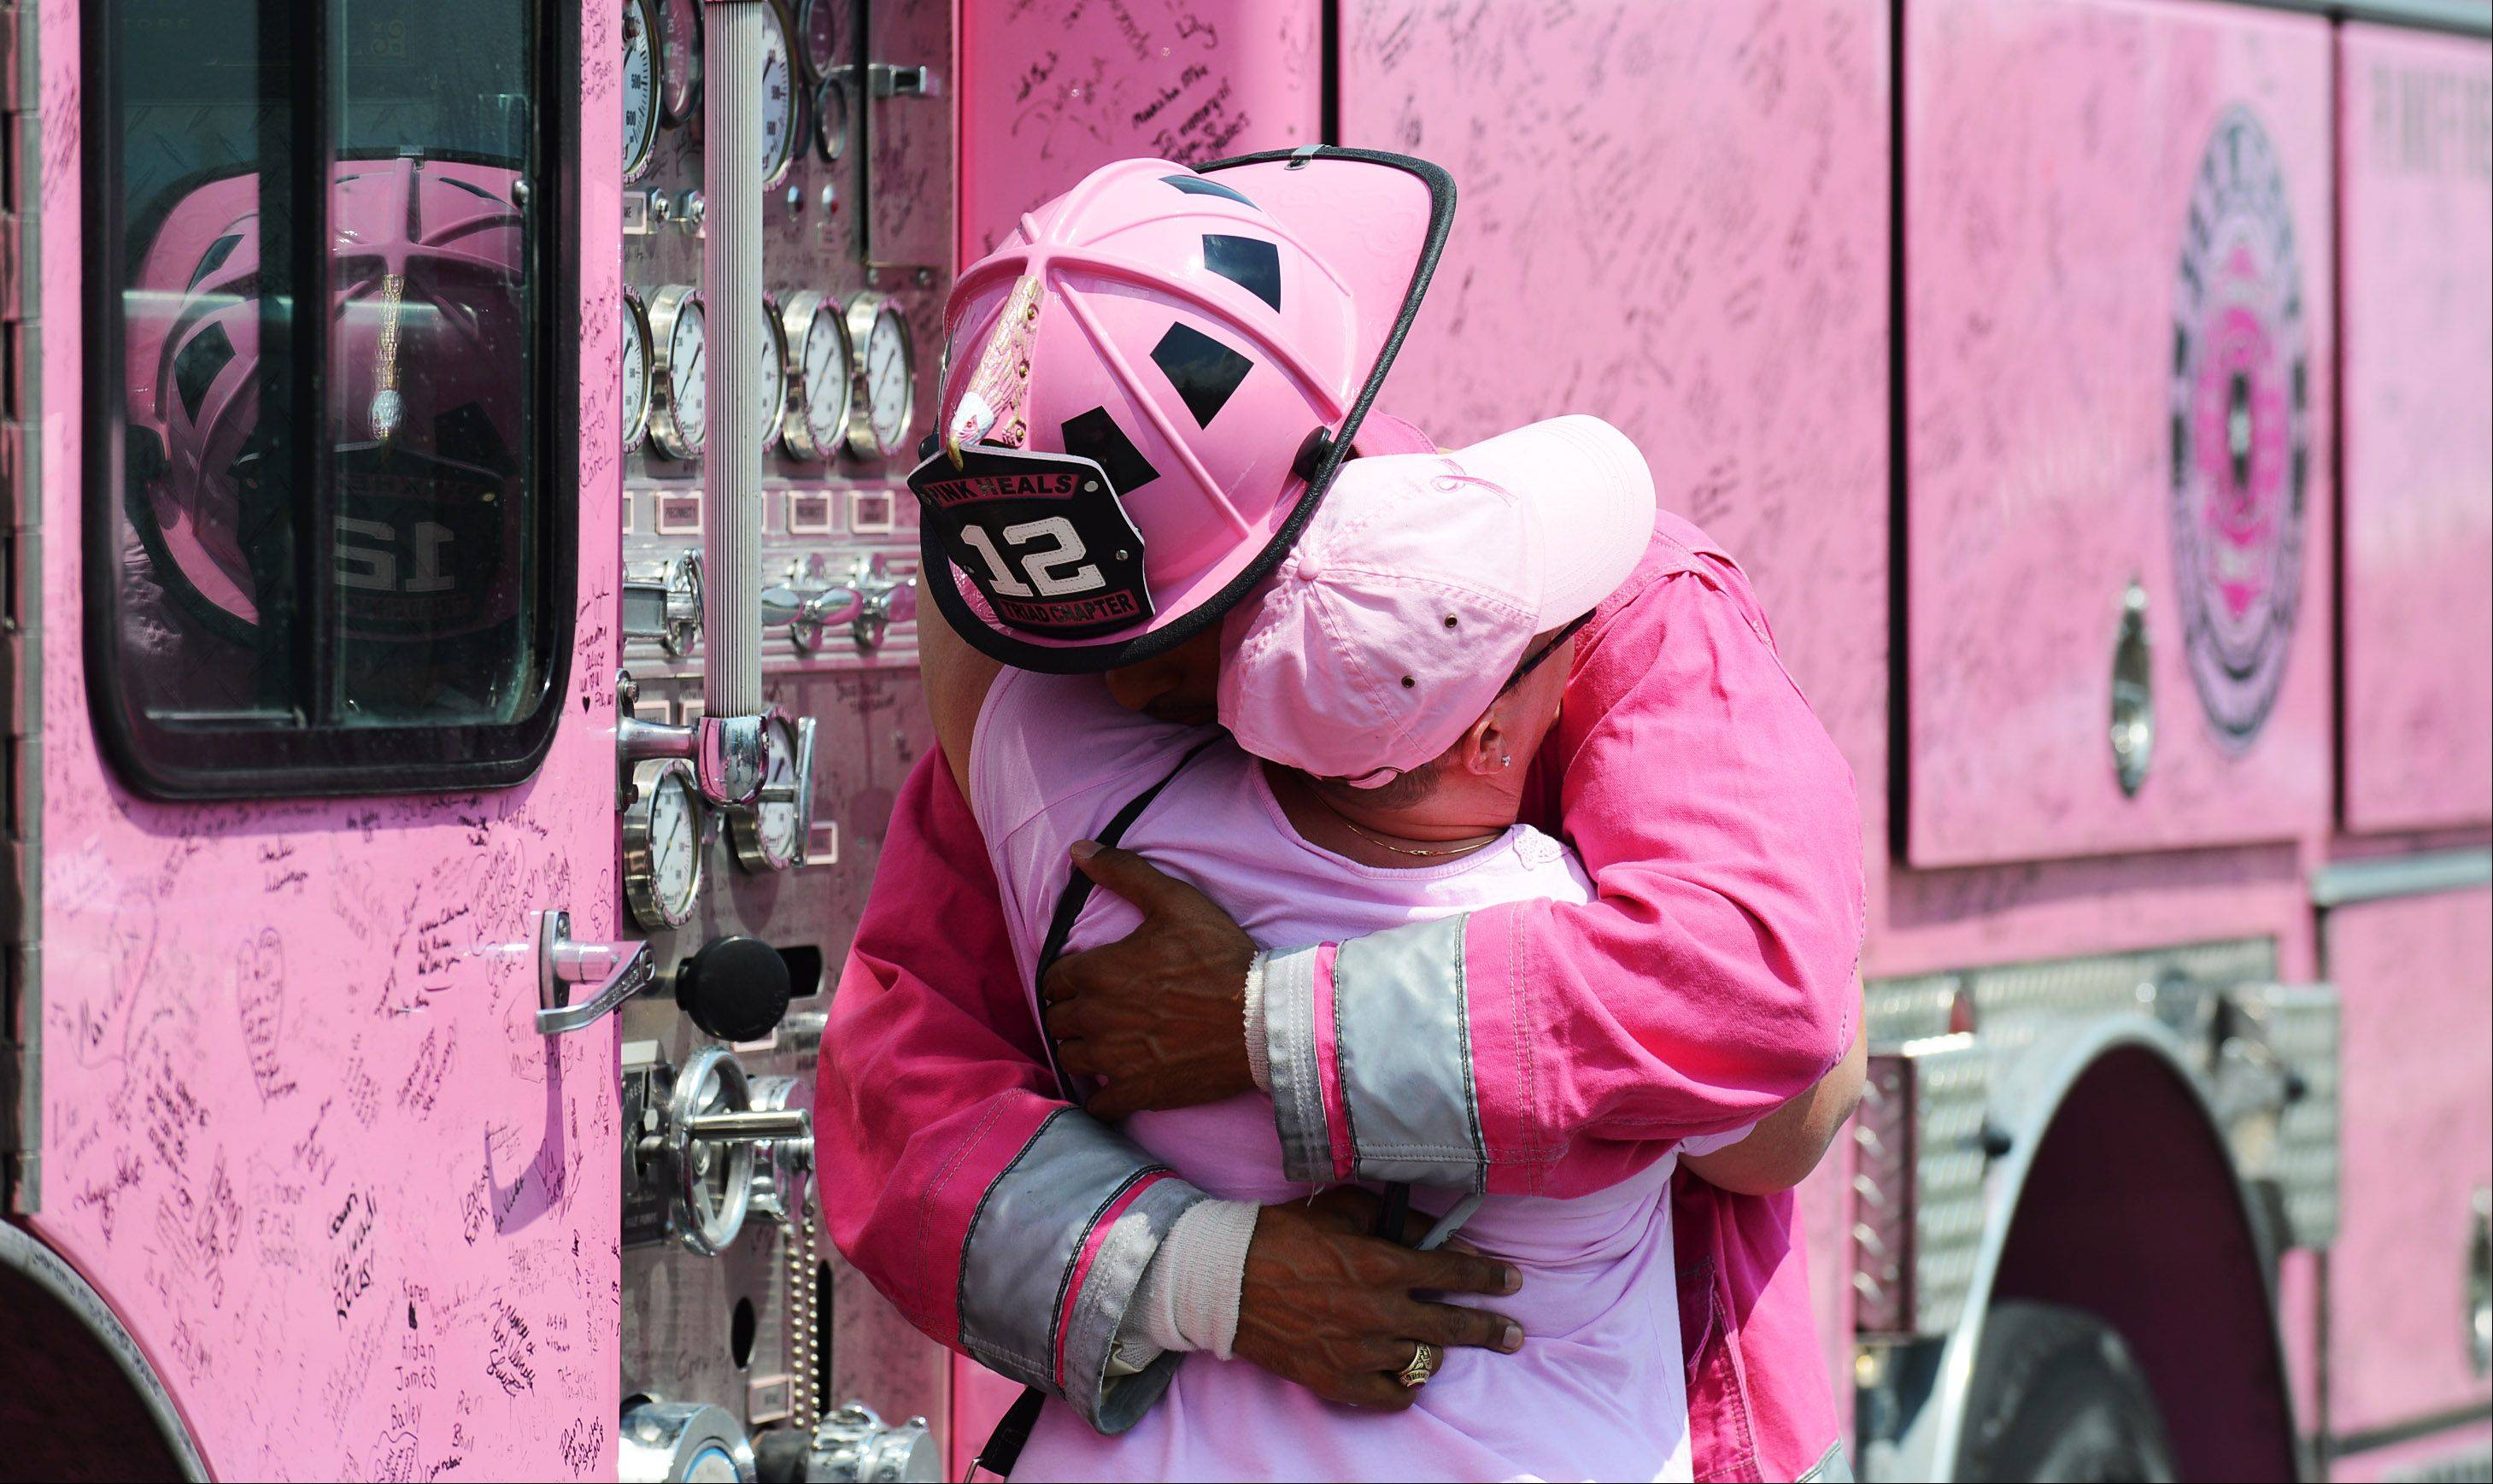 Aileen Petersen of Union gets a hug from firefighter Chuck Goins who travels cross-country with the Pink Heals fire trucks. The organization stopped at Spring Hill Gymnastics in West Dundee to surprise some of their employees who are battling cancer on Friday, August 2.